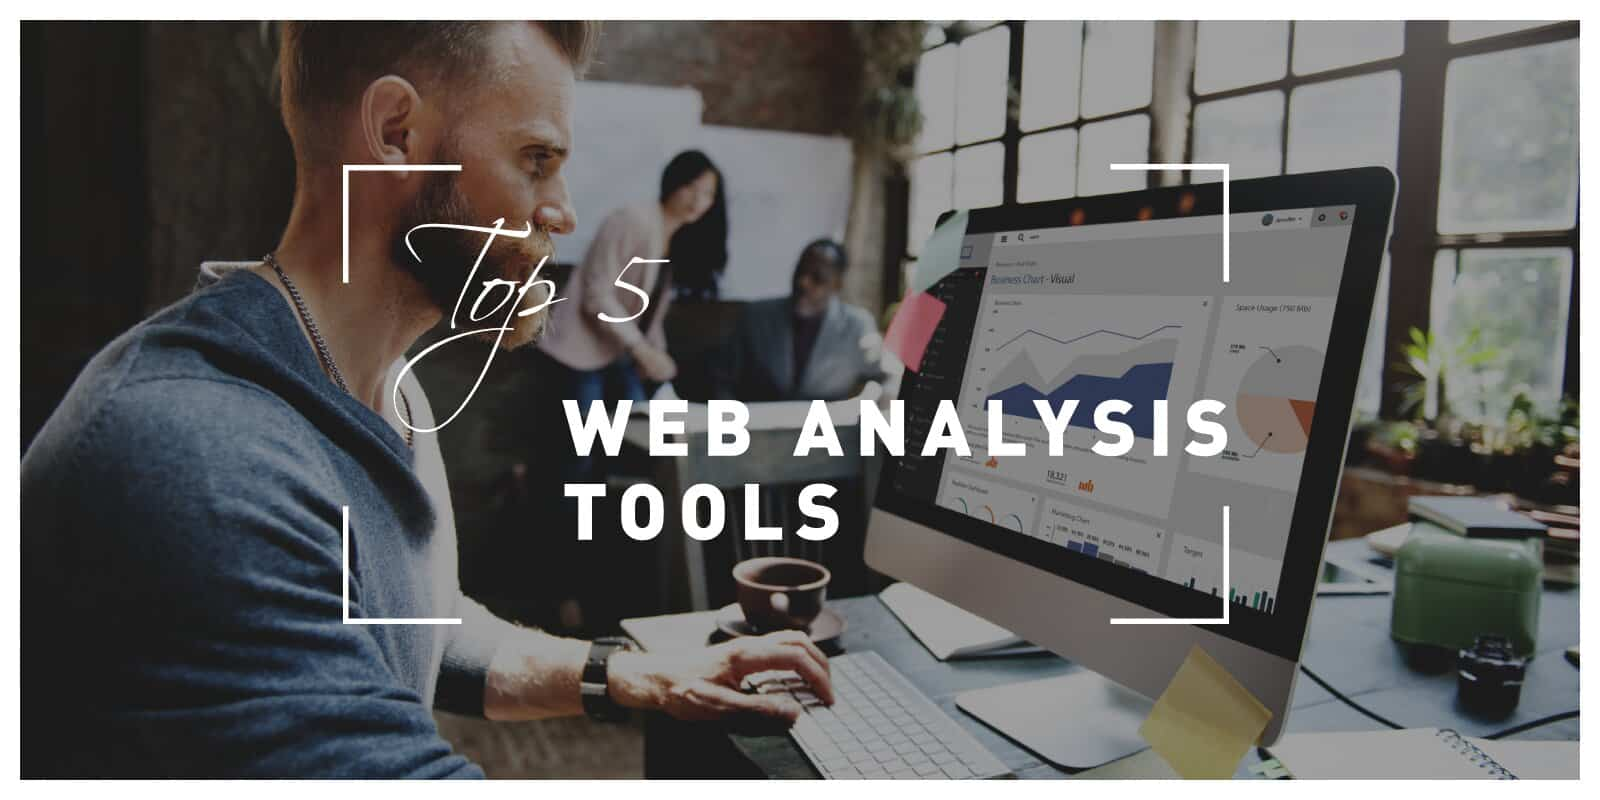 Top 5 Web Analysis Tools to Monitor and Improve Your Website With Ease at All Times